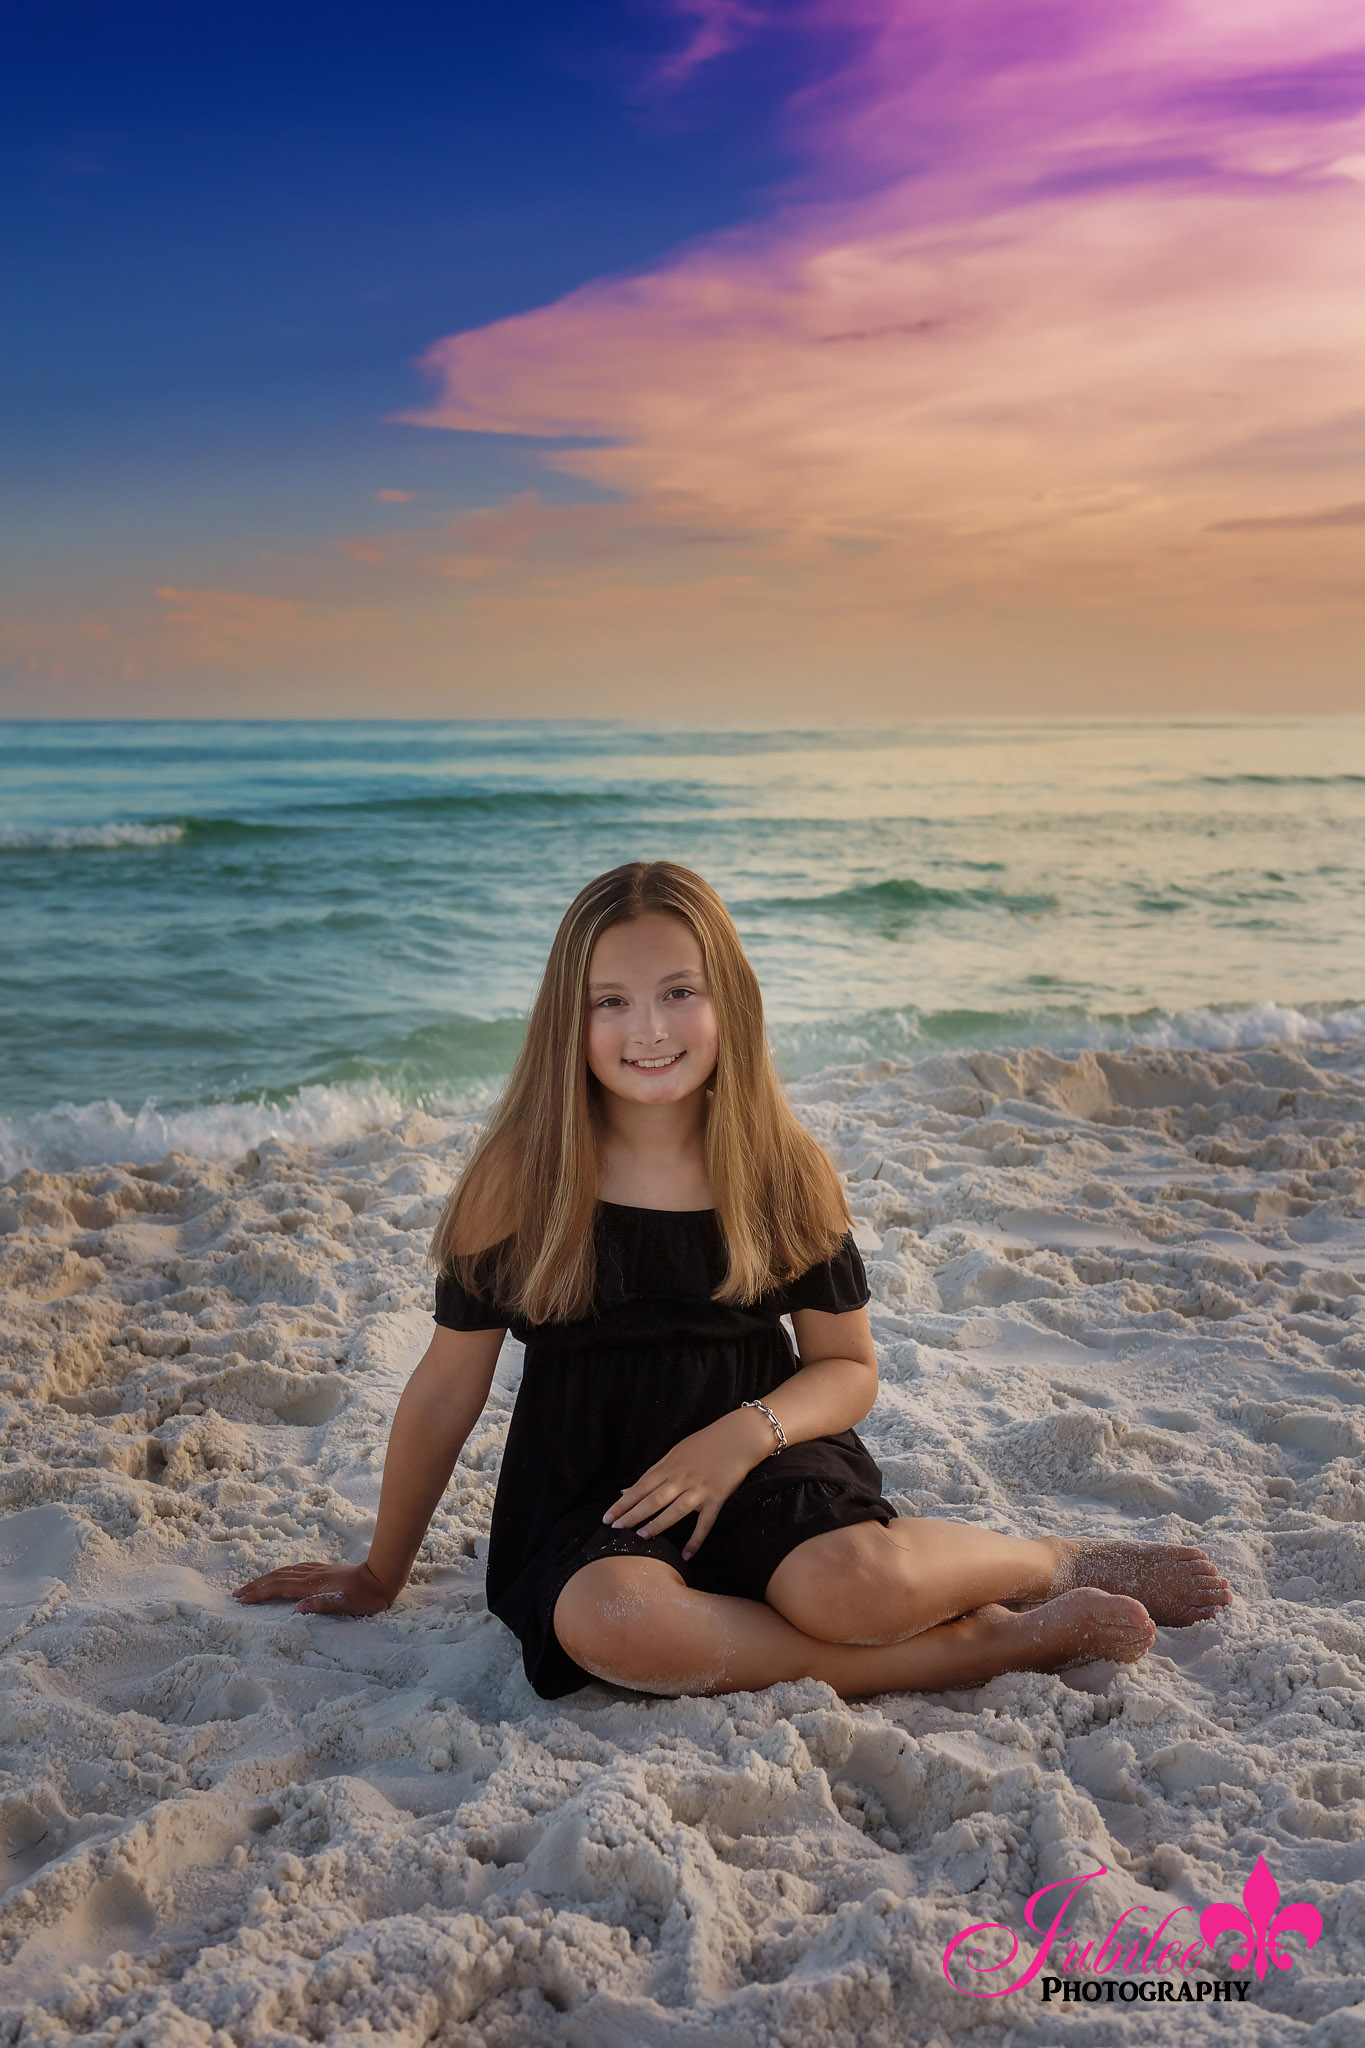 Destin_FL_Beach_Photographer_Watercolor_Resort_0842